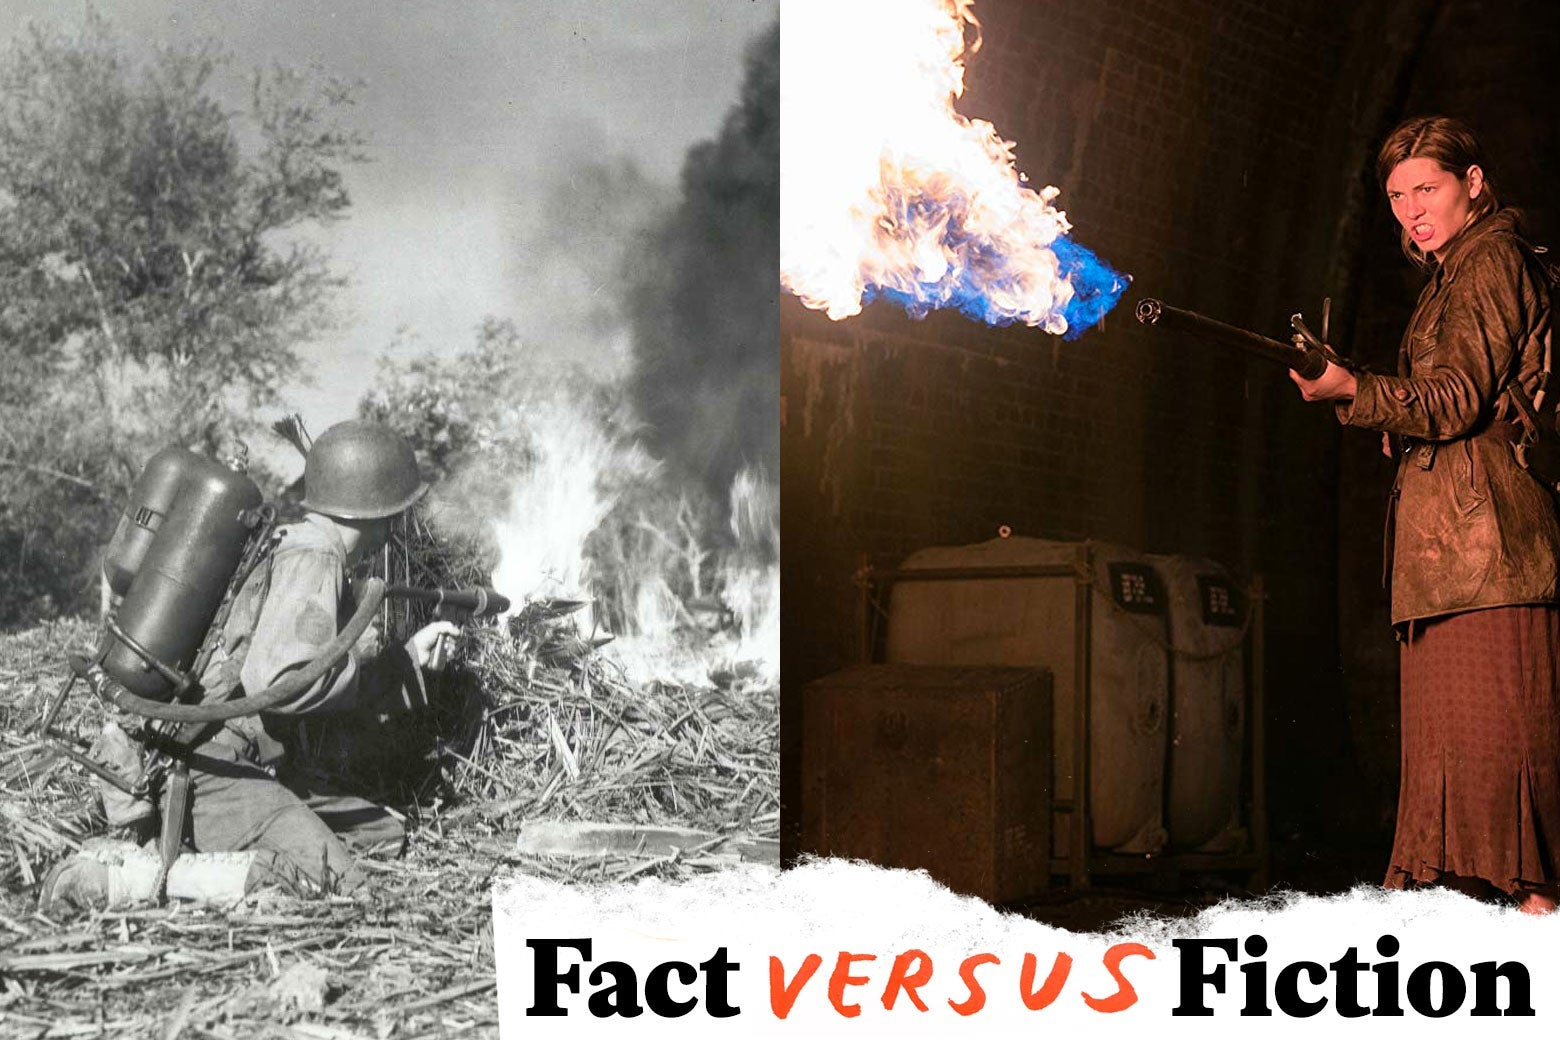 A file shot of a soldier with a flamethrower, paired with a still of actress Mathilde Ollivier wielding a flamethrower in Overlord.